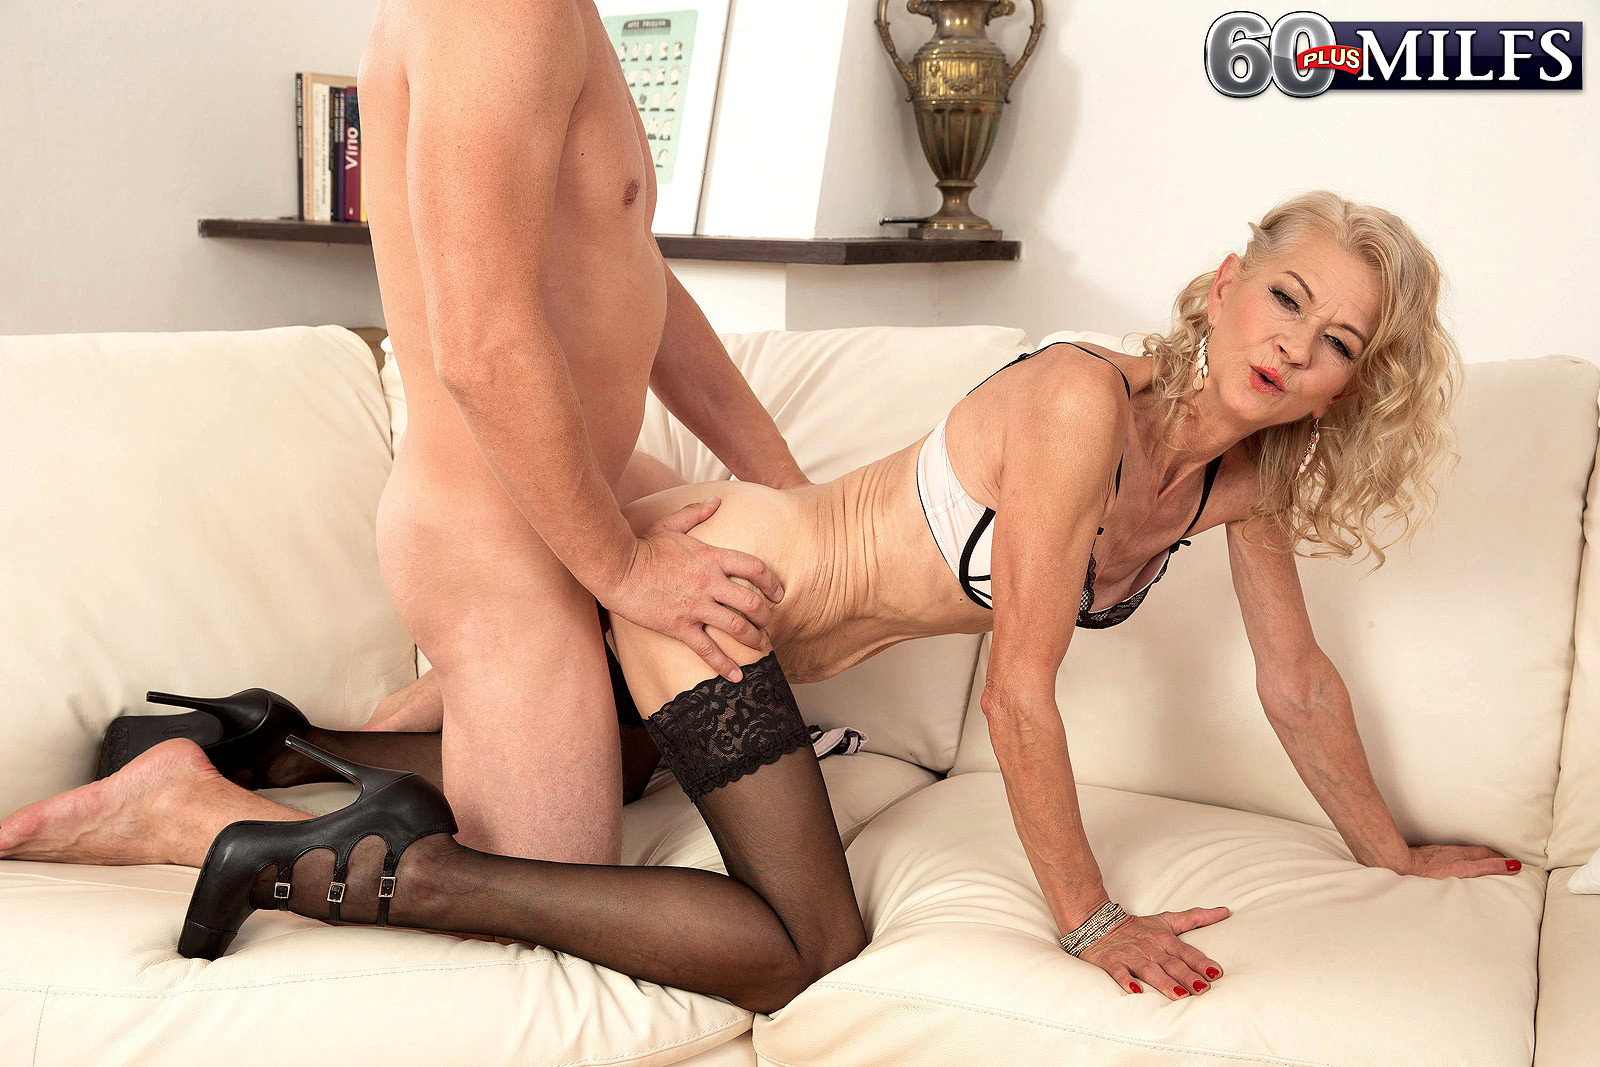 mature stockings plus 60